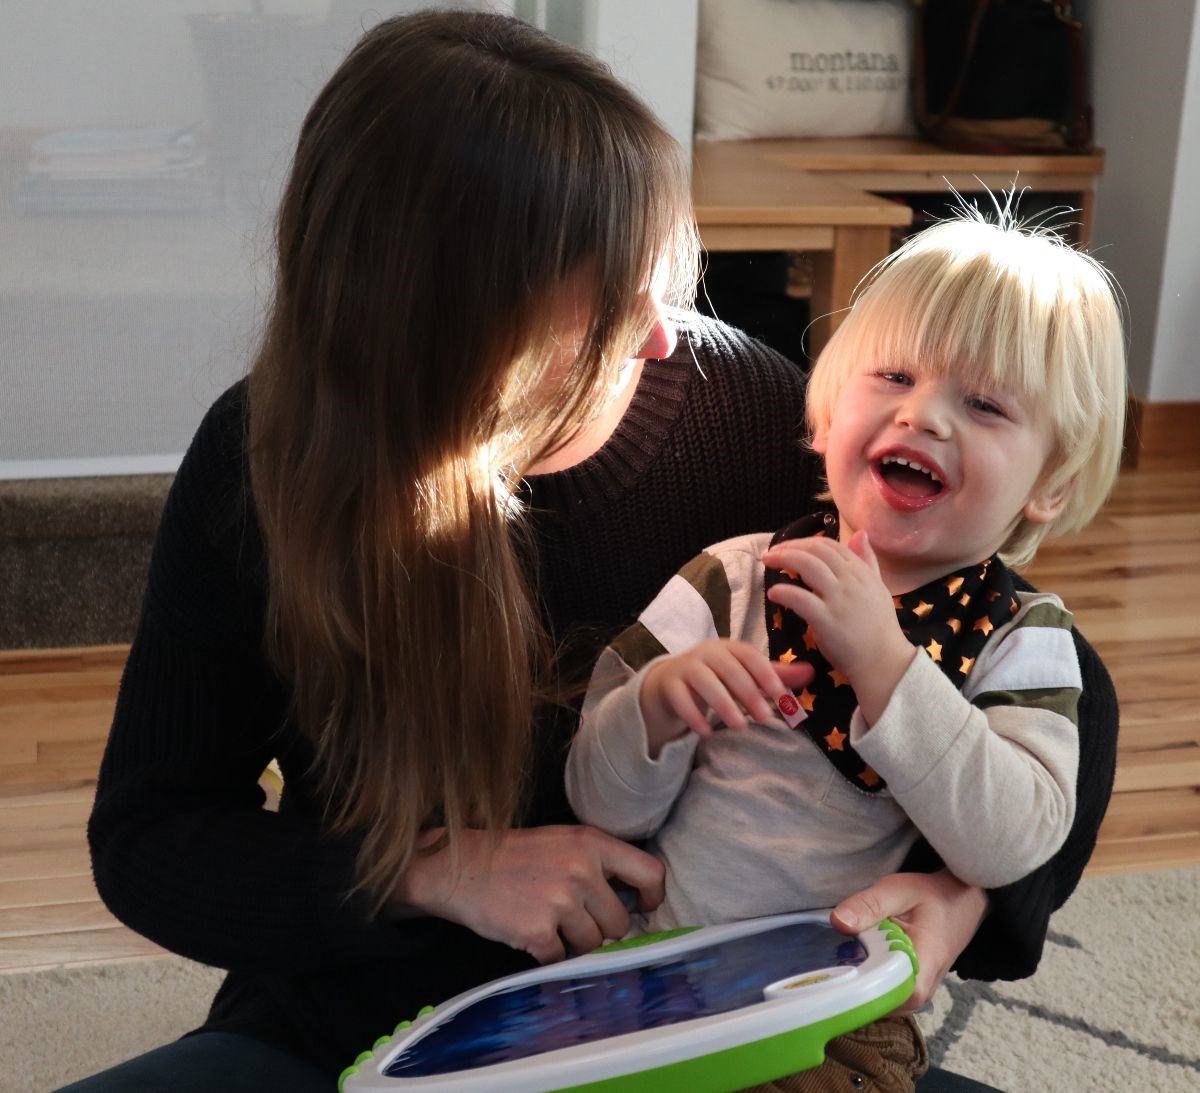 Rebecca, in dark sweater with long hair hanging over her face, holds a laughing Everett, the sunshine coming through a window onto his white-blond hair.